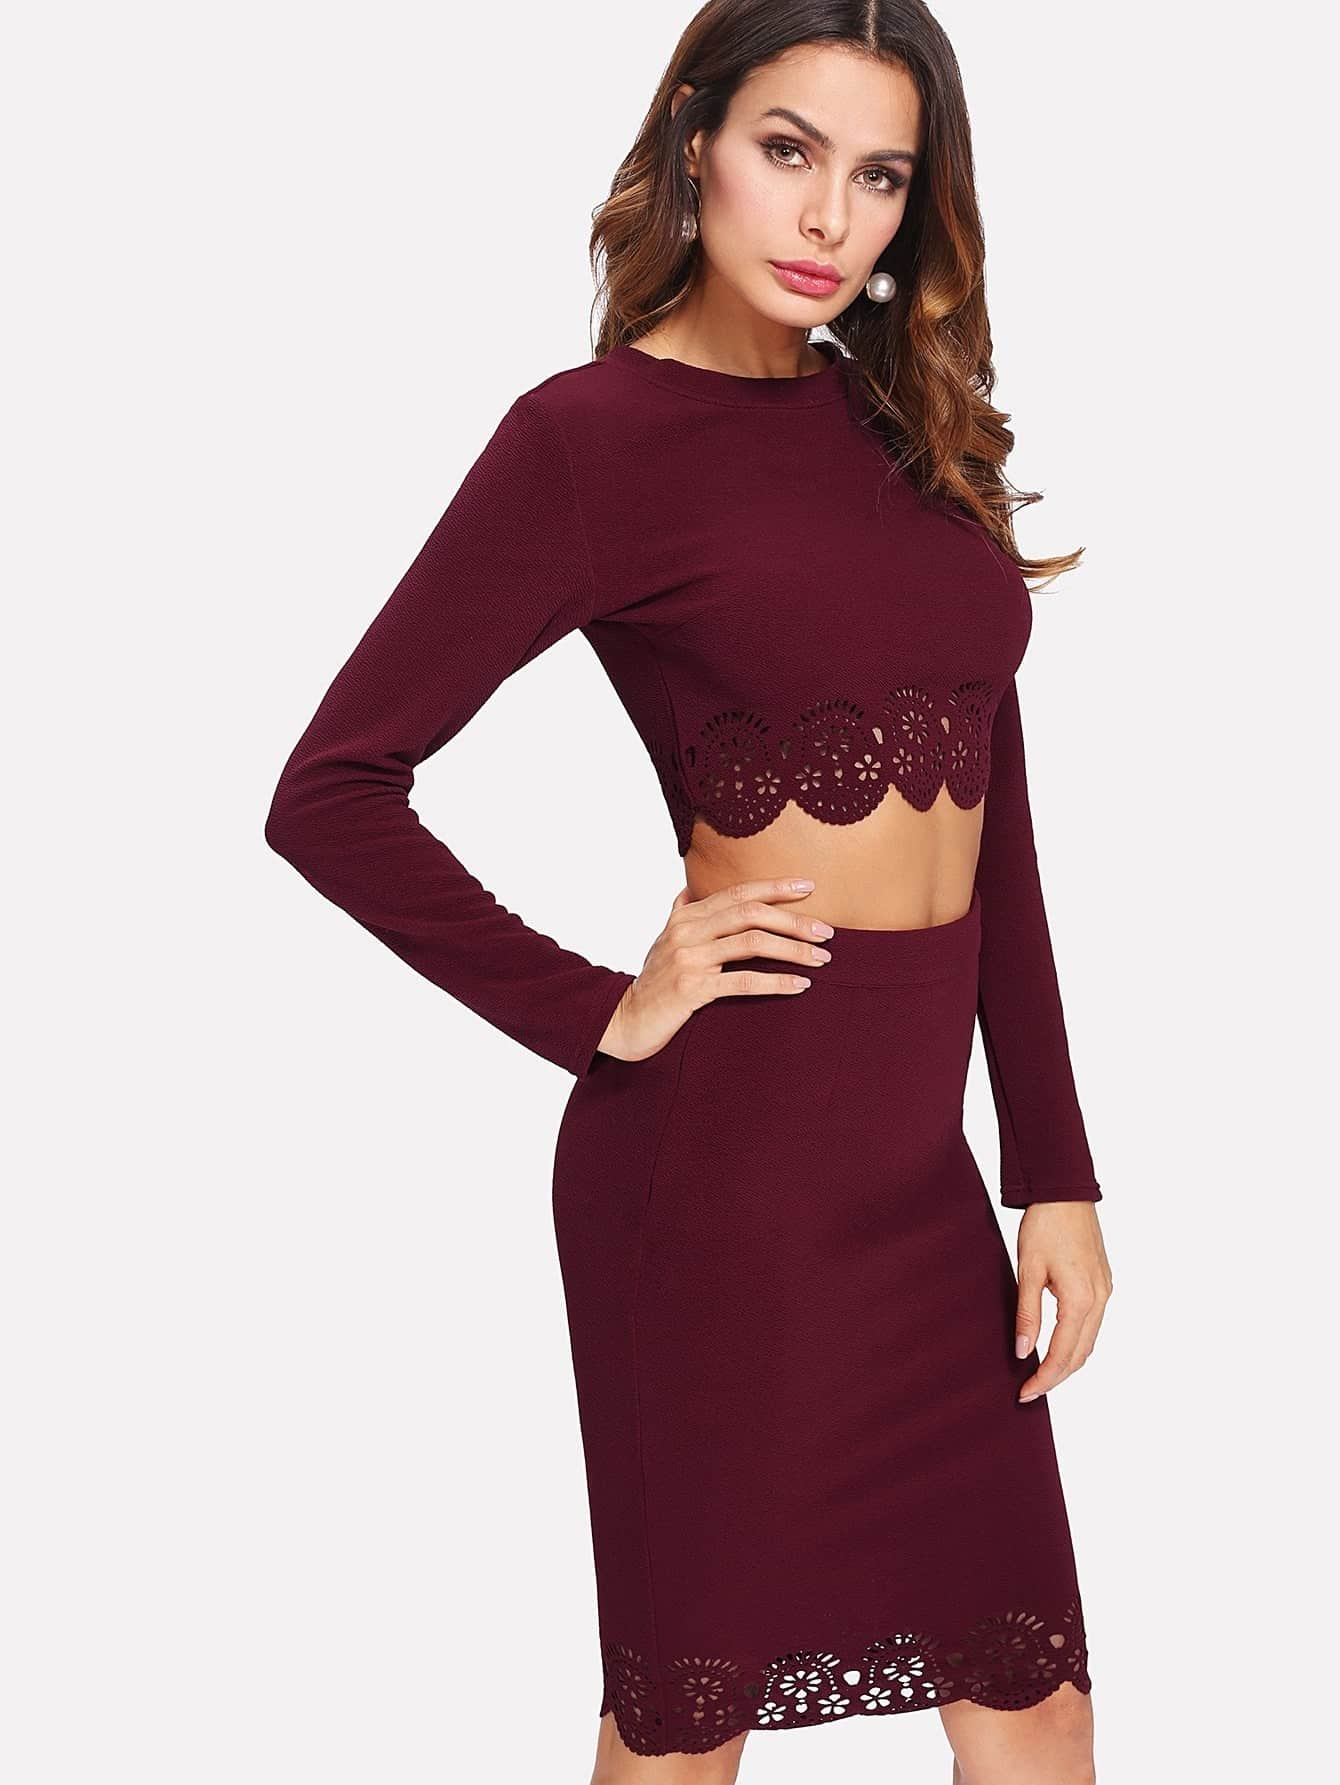 Scallop Laser Cut Top & Pencil Skirt Co-Ord